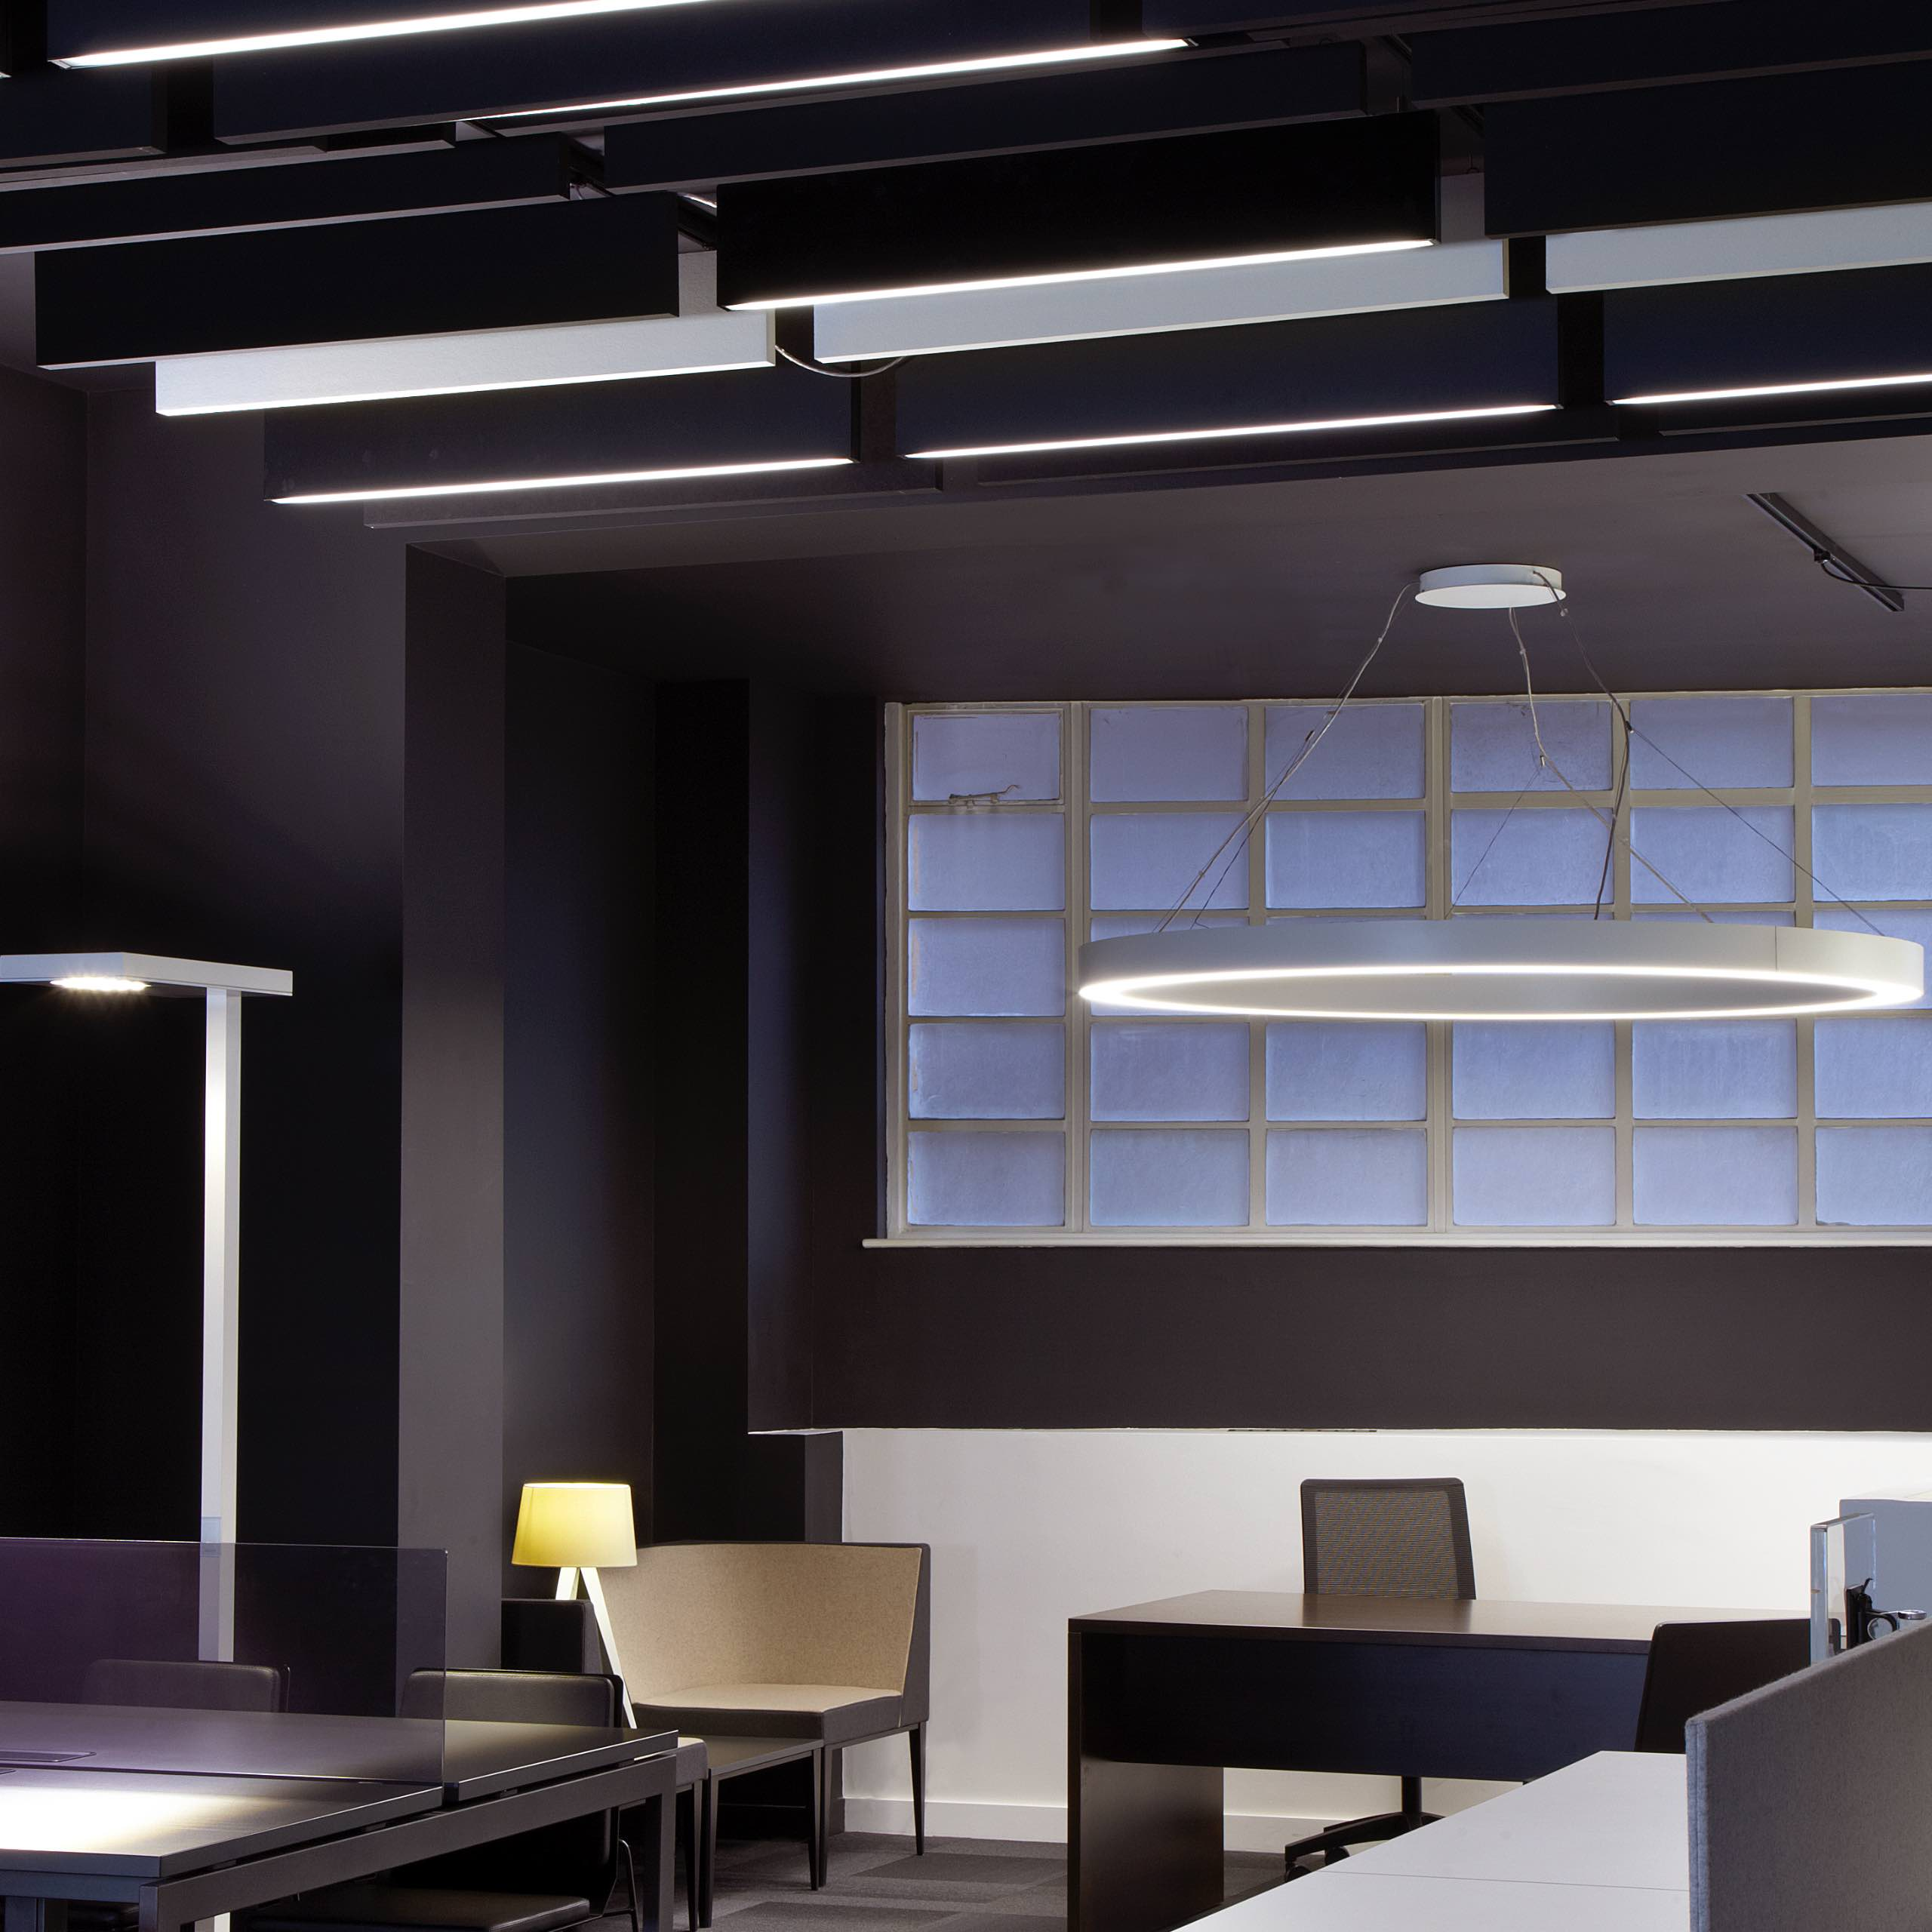 Spectral Blade Acoustic Lighting System